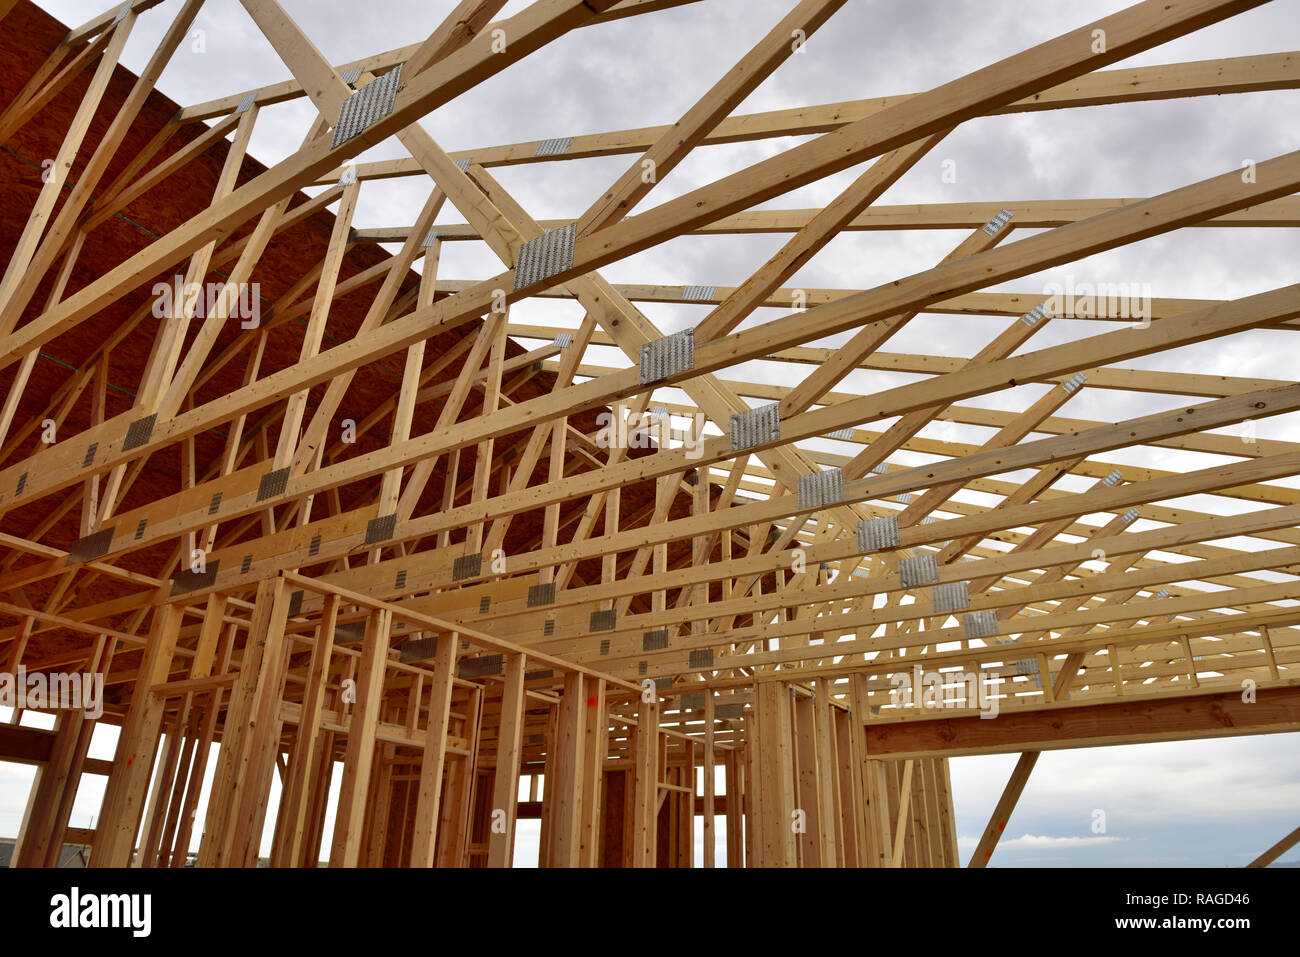 New wood frame house construction with roof trusses and stud walls, Arizona - Stock Image